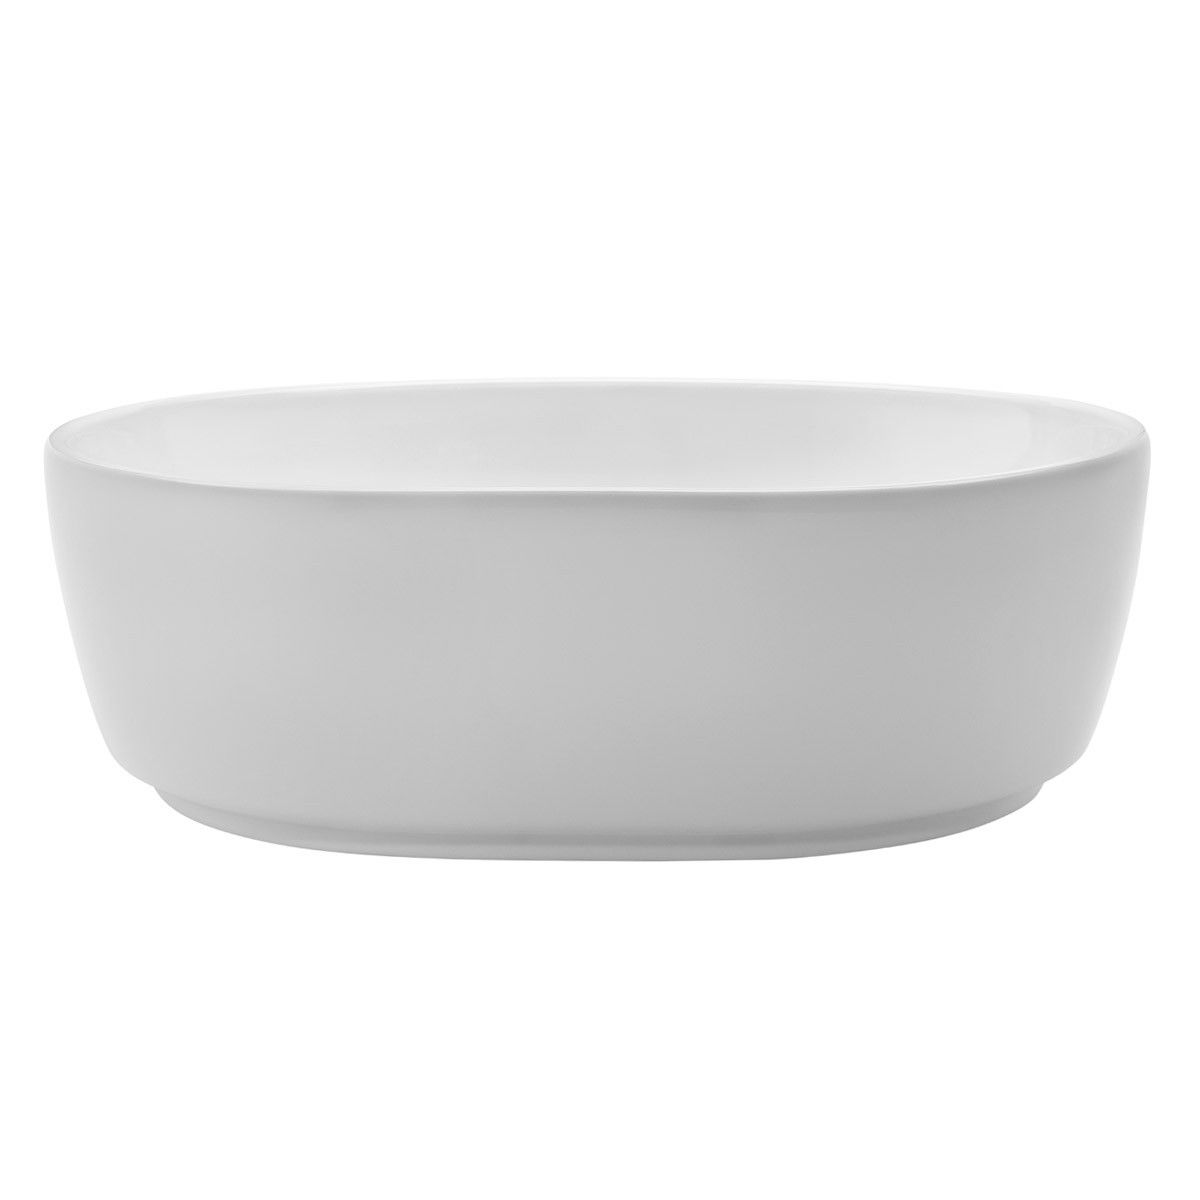 Bauhaus Pearl Countertop Basin 450 x 350mm